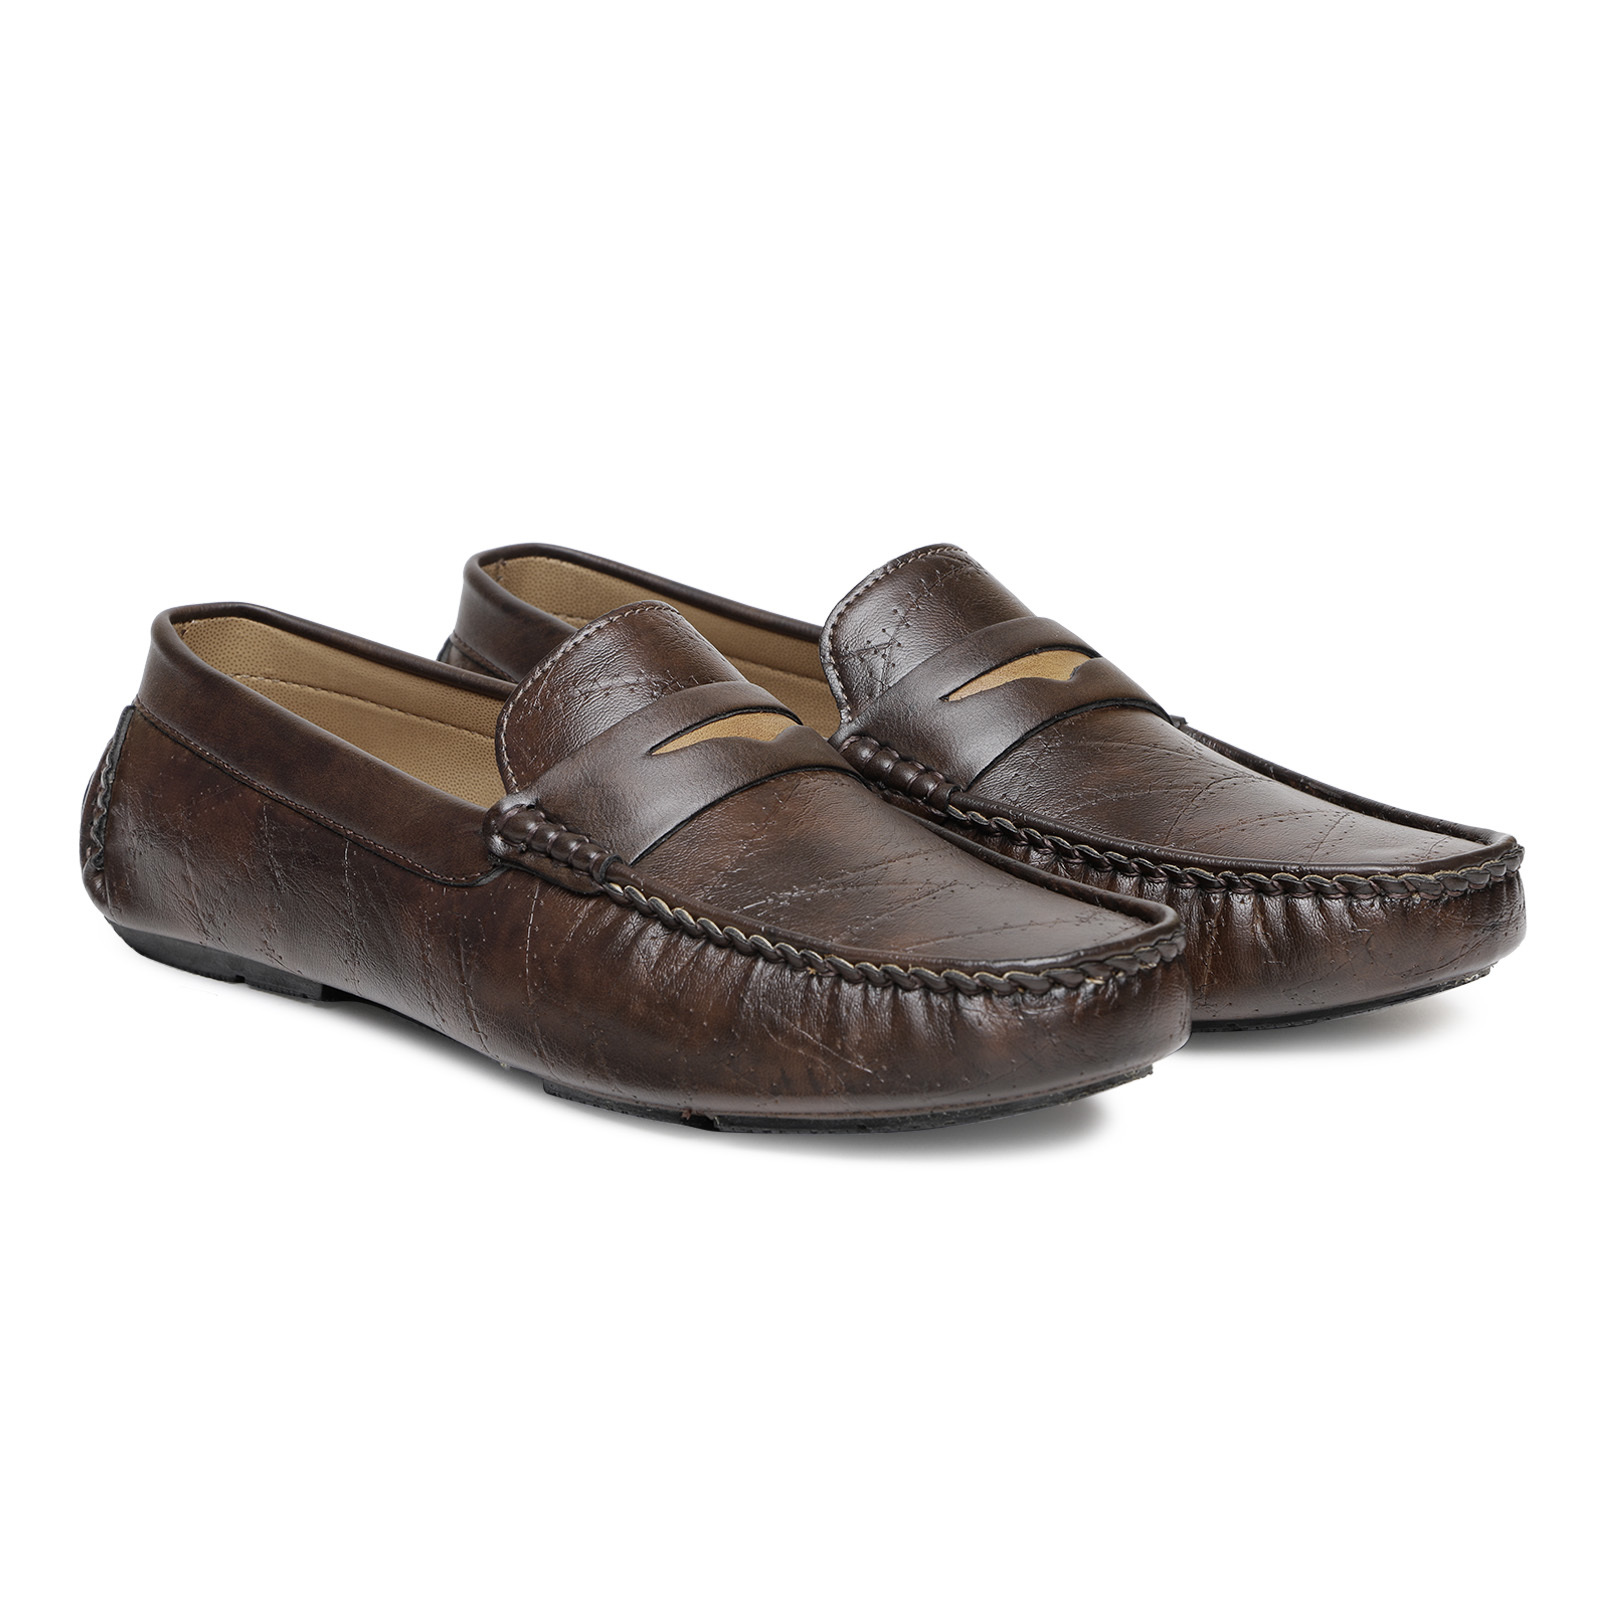 Mens Brown Loafer Shoes